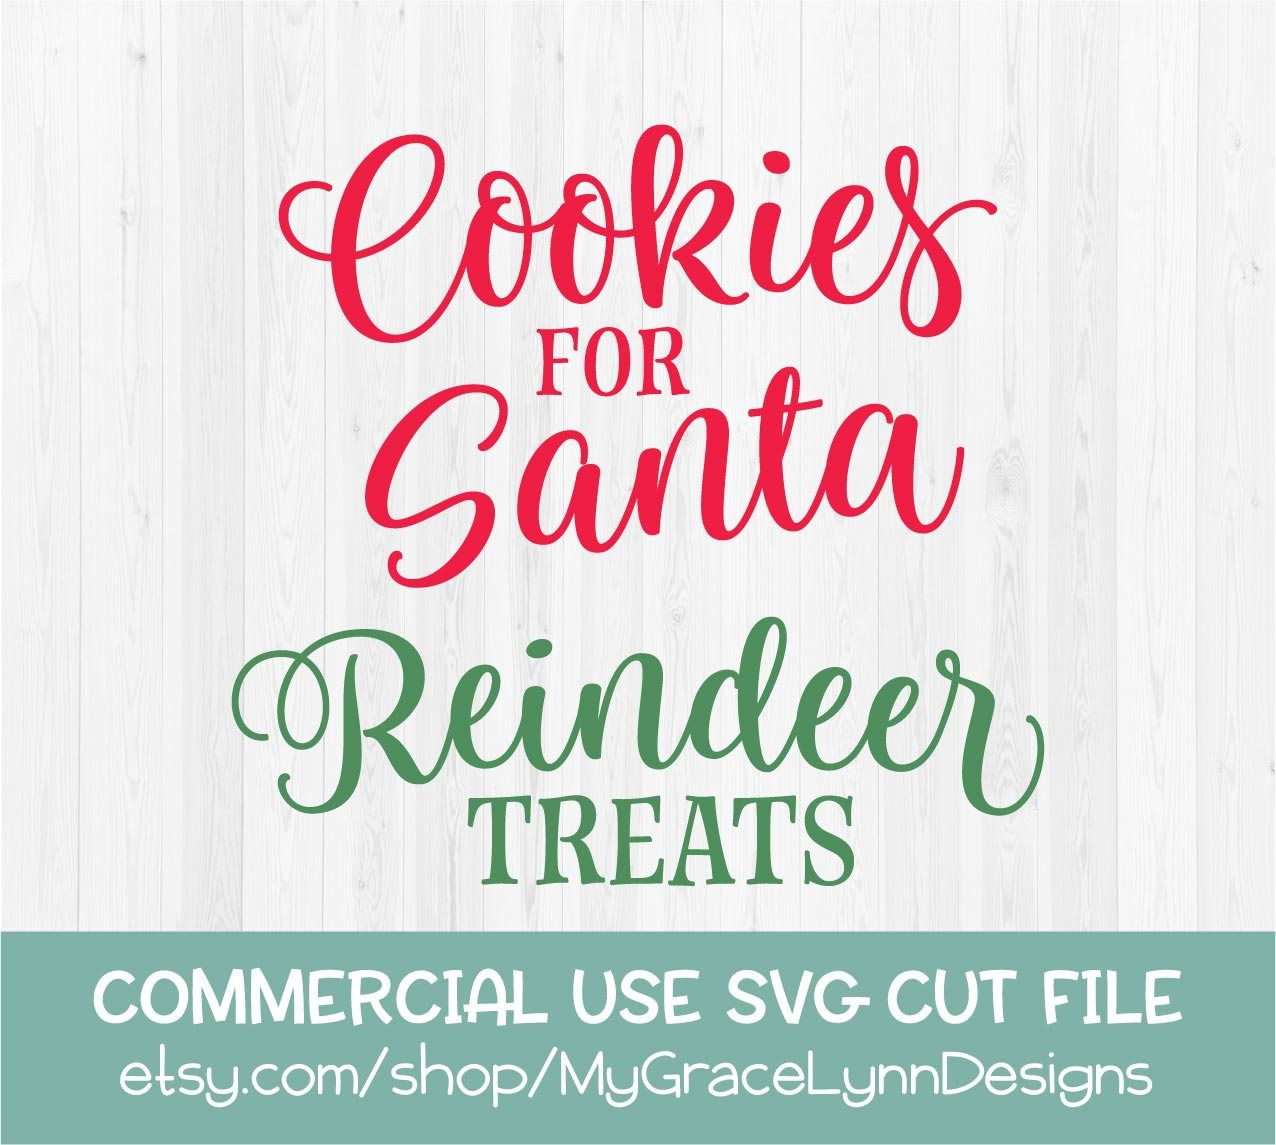 Cookies for Santa SVG, Christmas SVG, Holiday tray, Dear